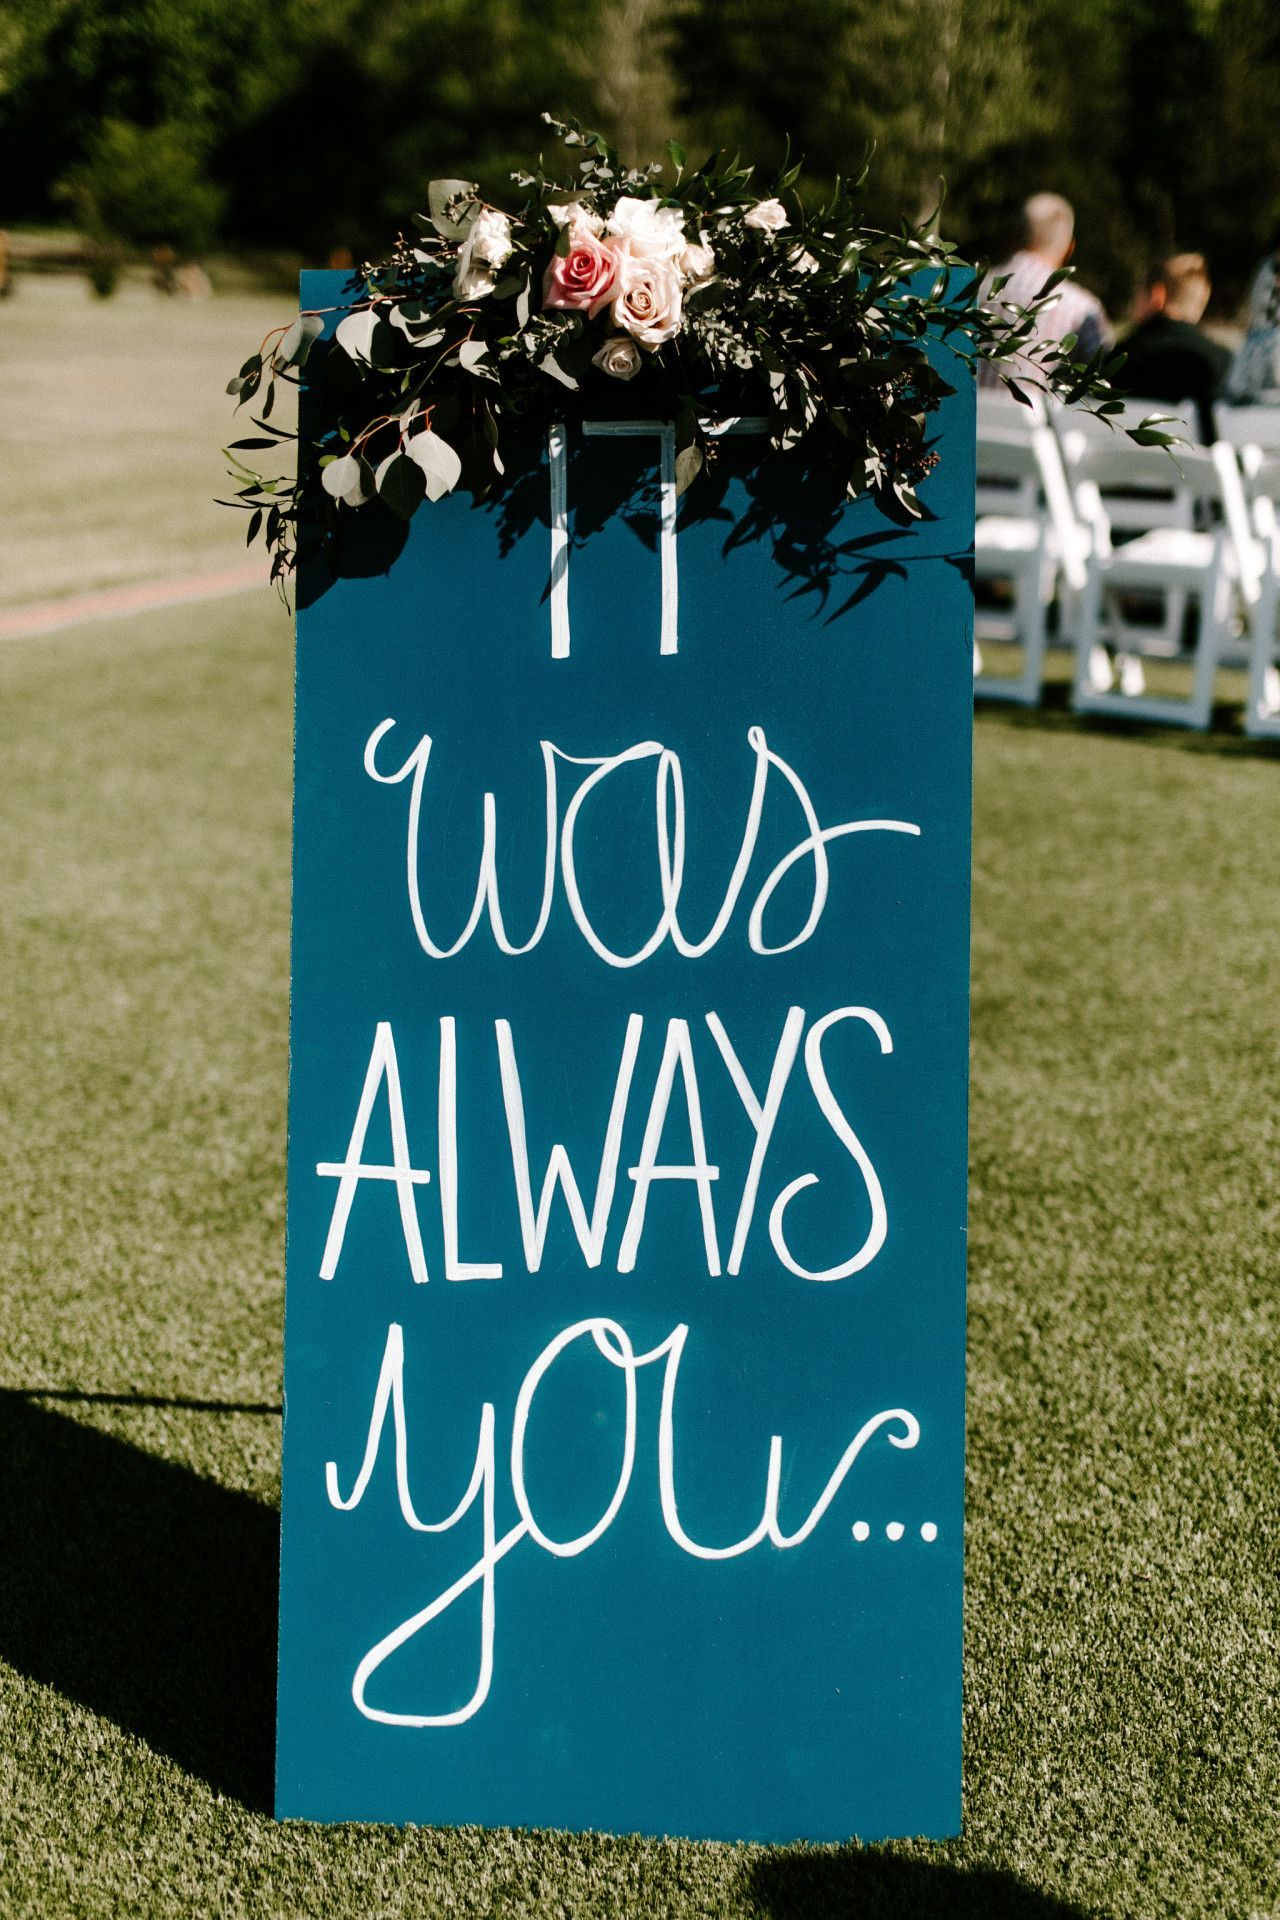 Wedding decorations quotes  wedding quotes  love quotes  wedding sign ideas  wedding